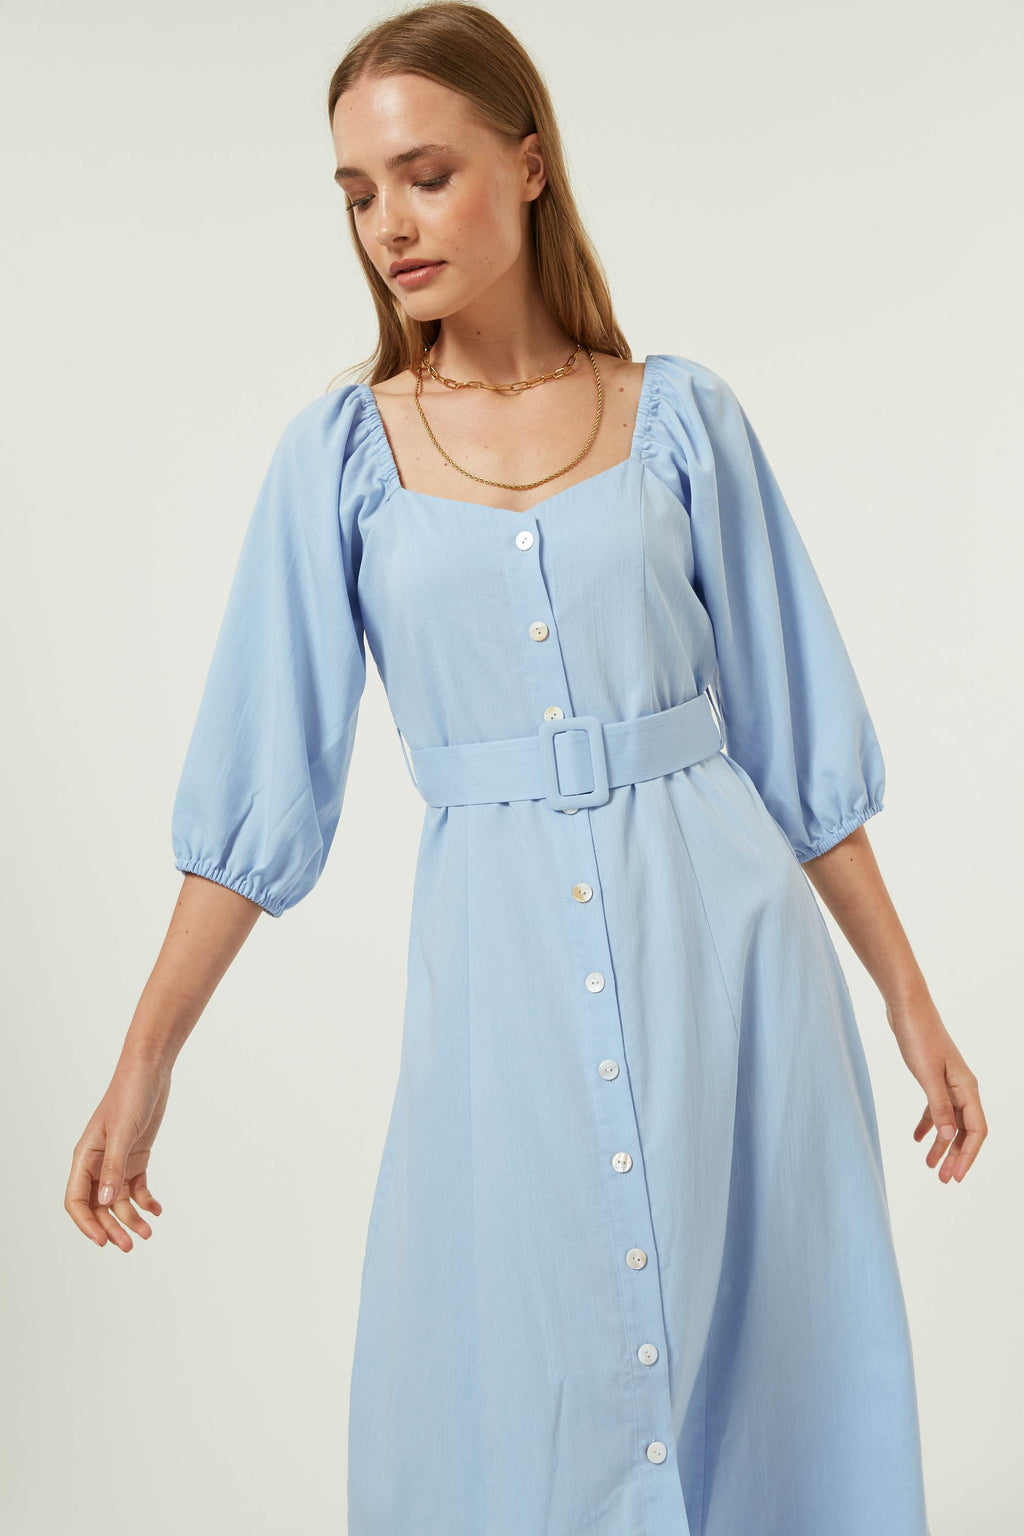 Jovonna London beautiful feminine off or on shoulder style midi dress featuring  button plackets fall to knee length, ¾ elastic sleeve, with a matching removable waist belt.